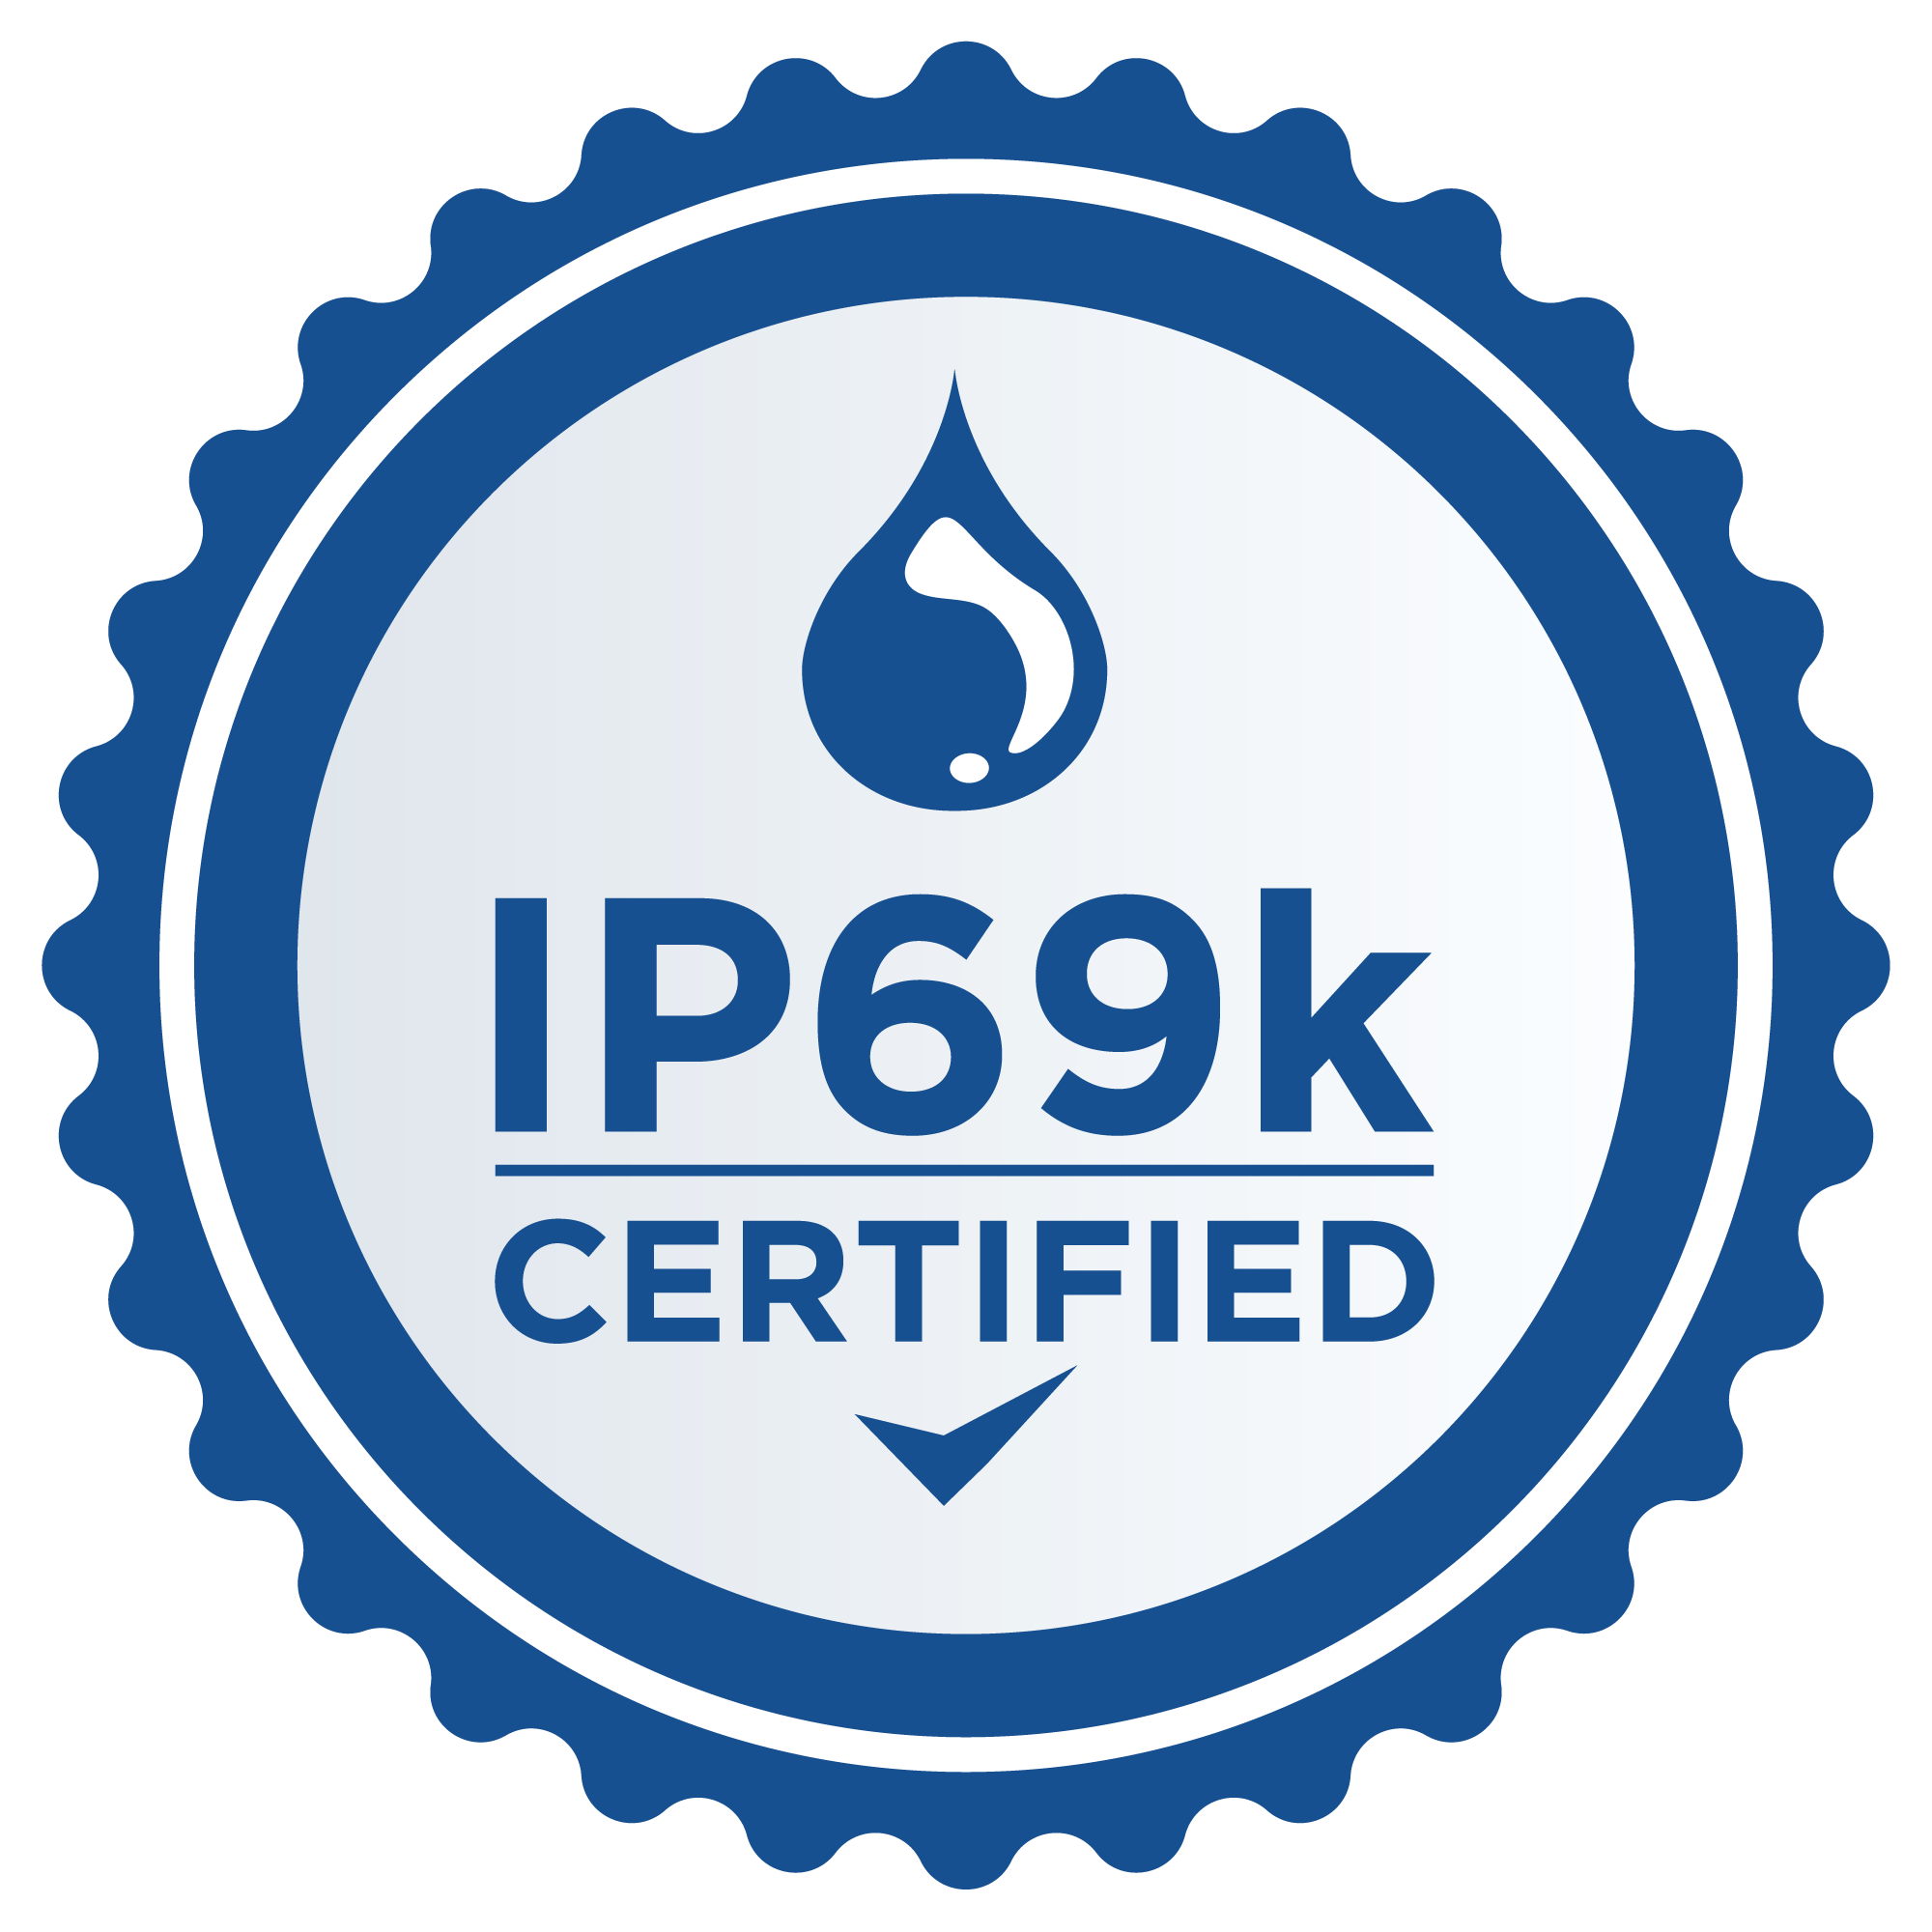 IP69k Protection